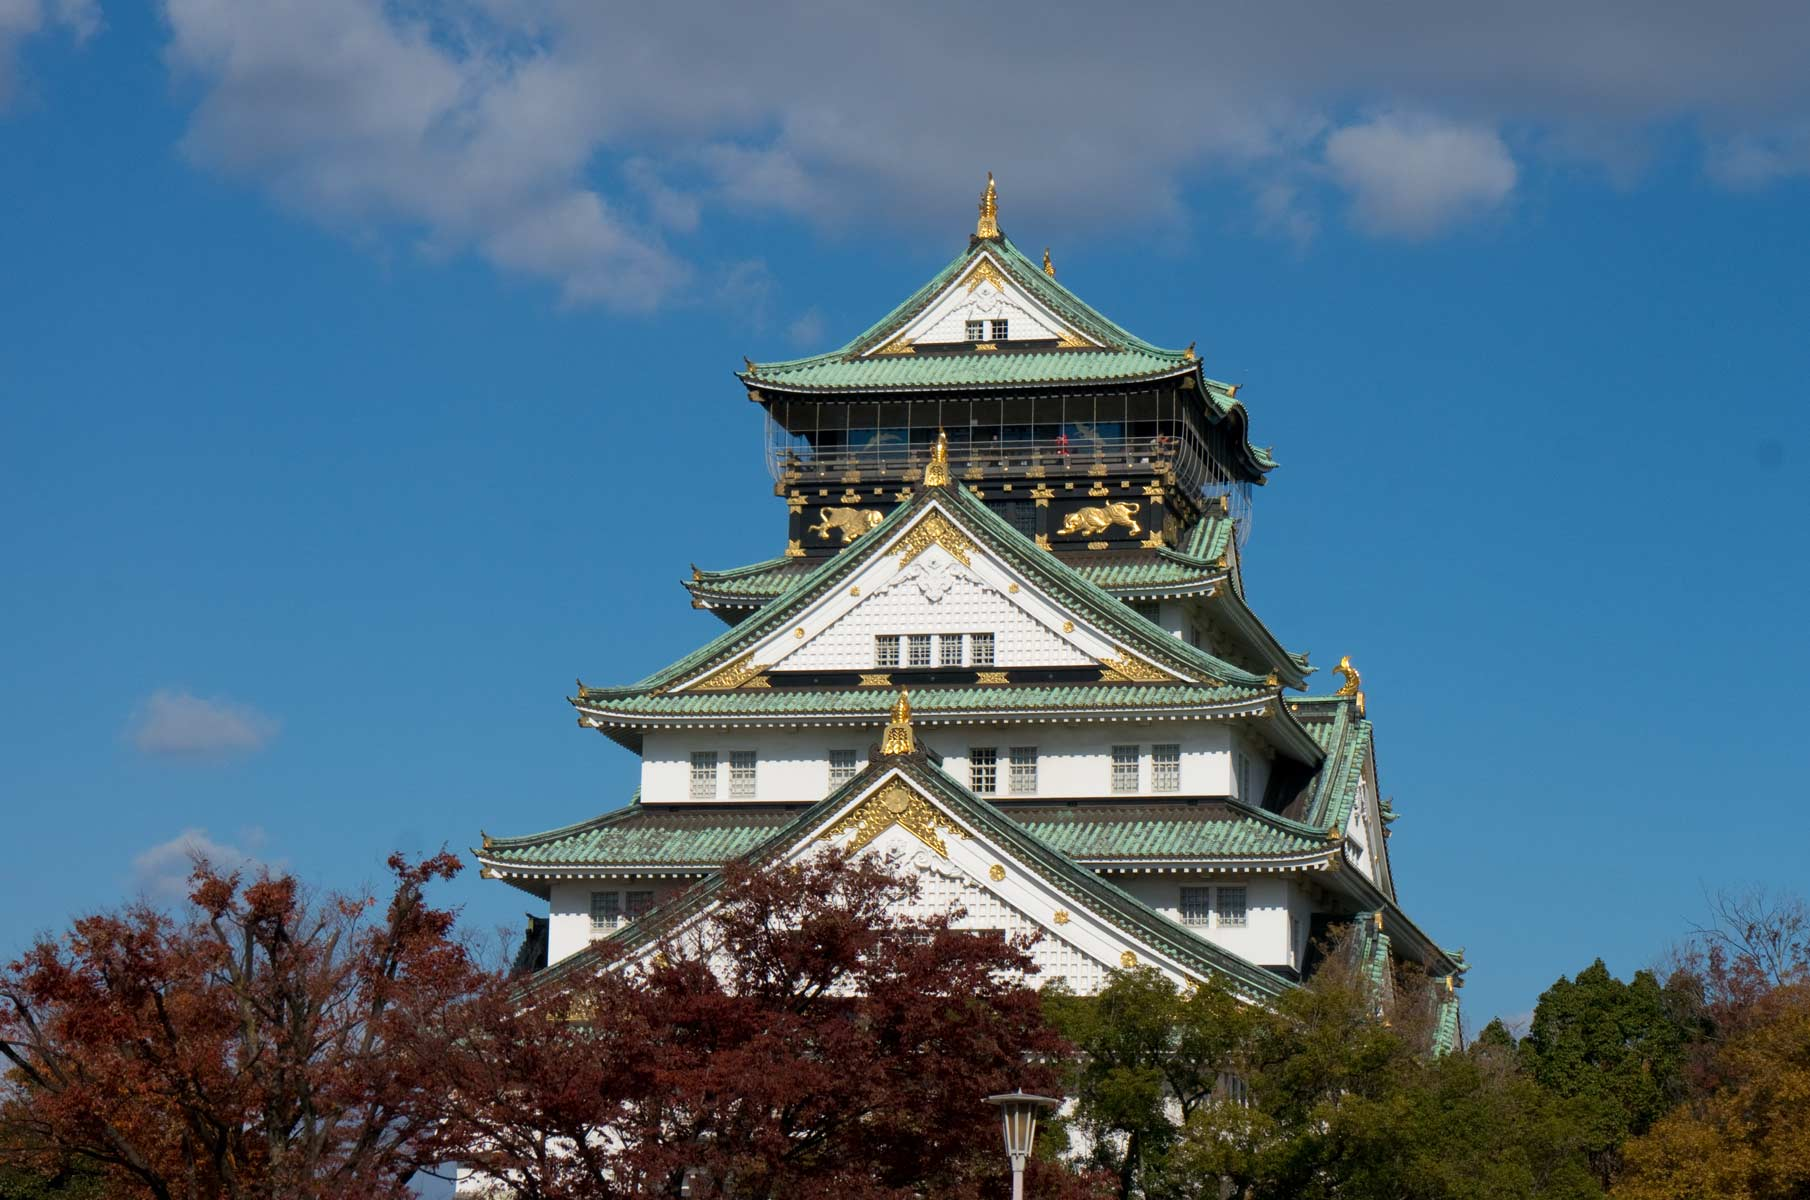 Burg Osaka (Osaka Castle) in Japan